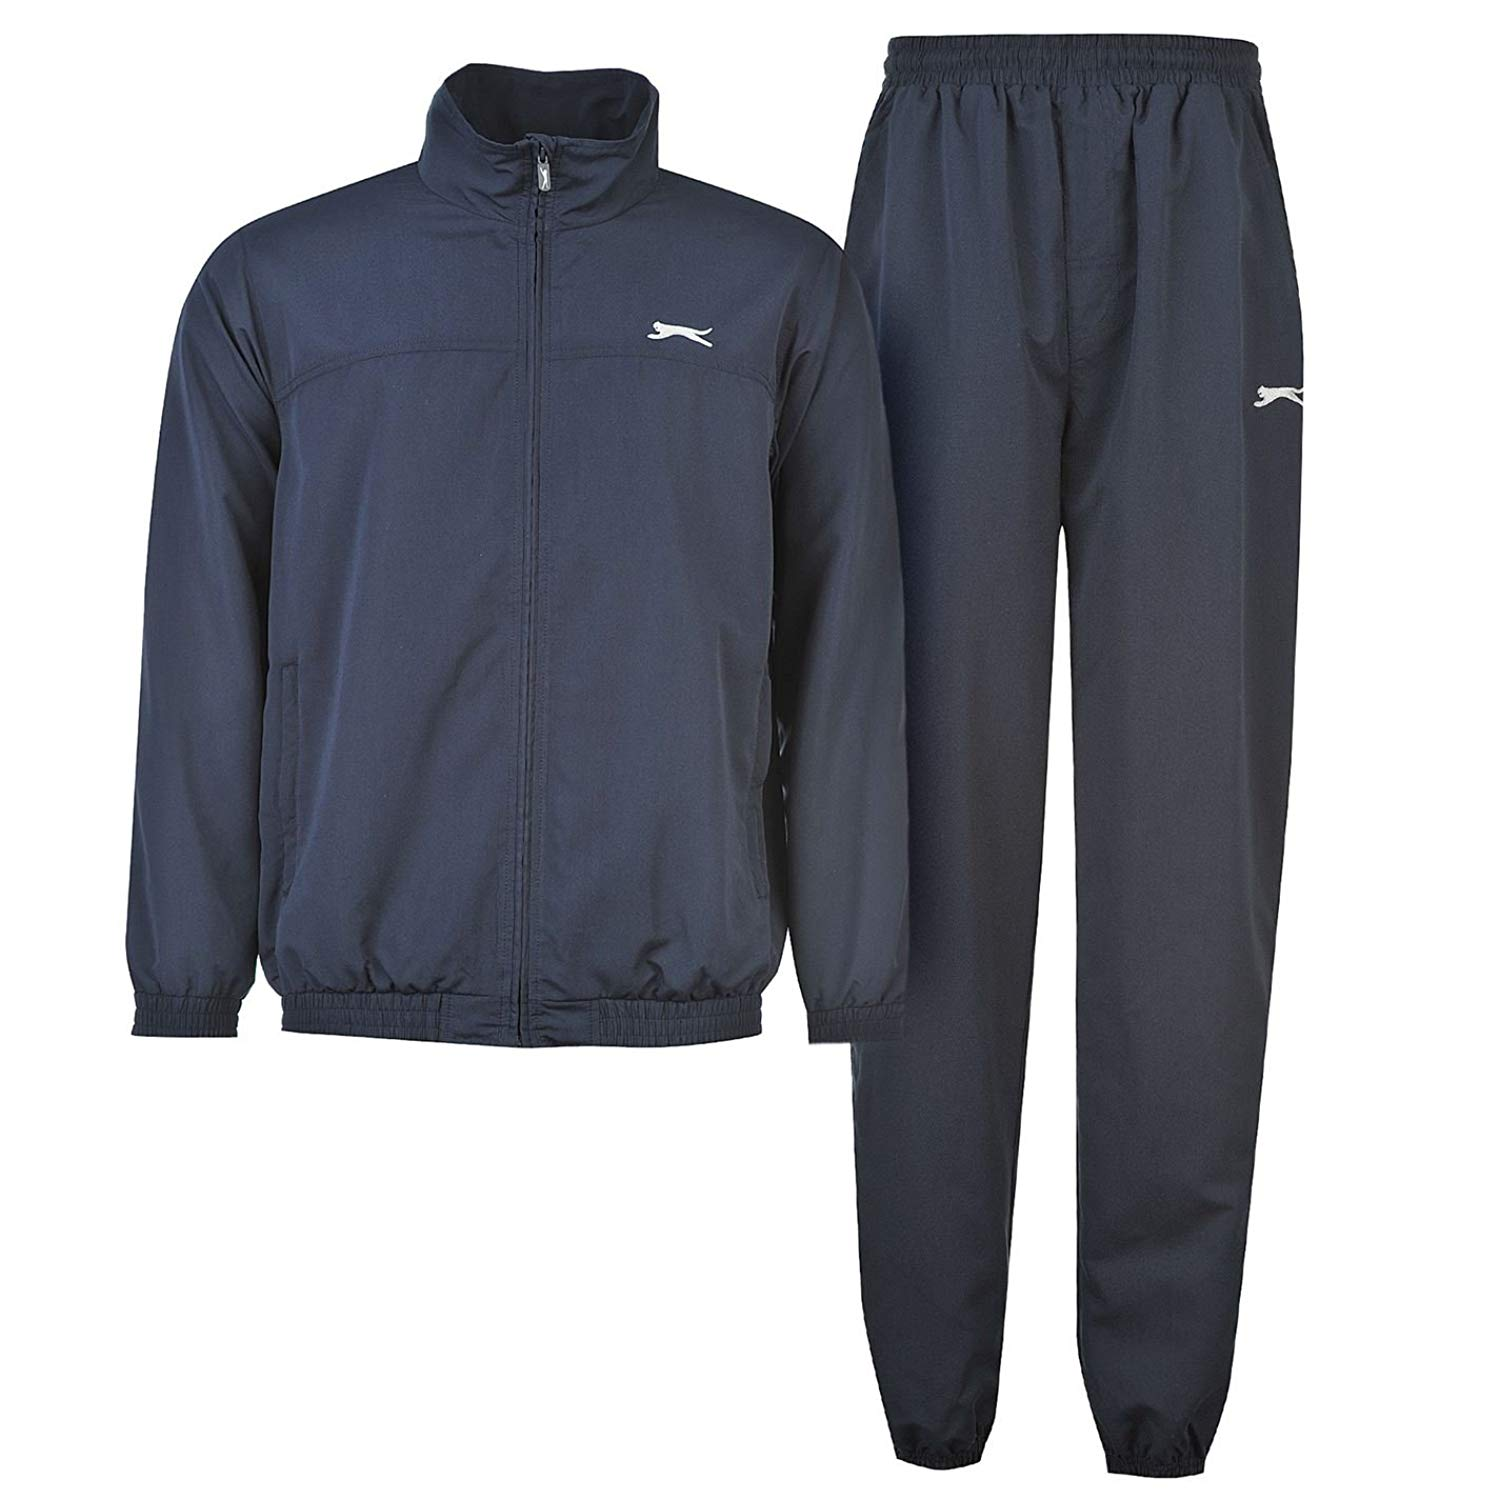 Slazenger Mens Woven Suit Tracksuit Long Sleeve Zip Top and Bottoms